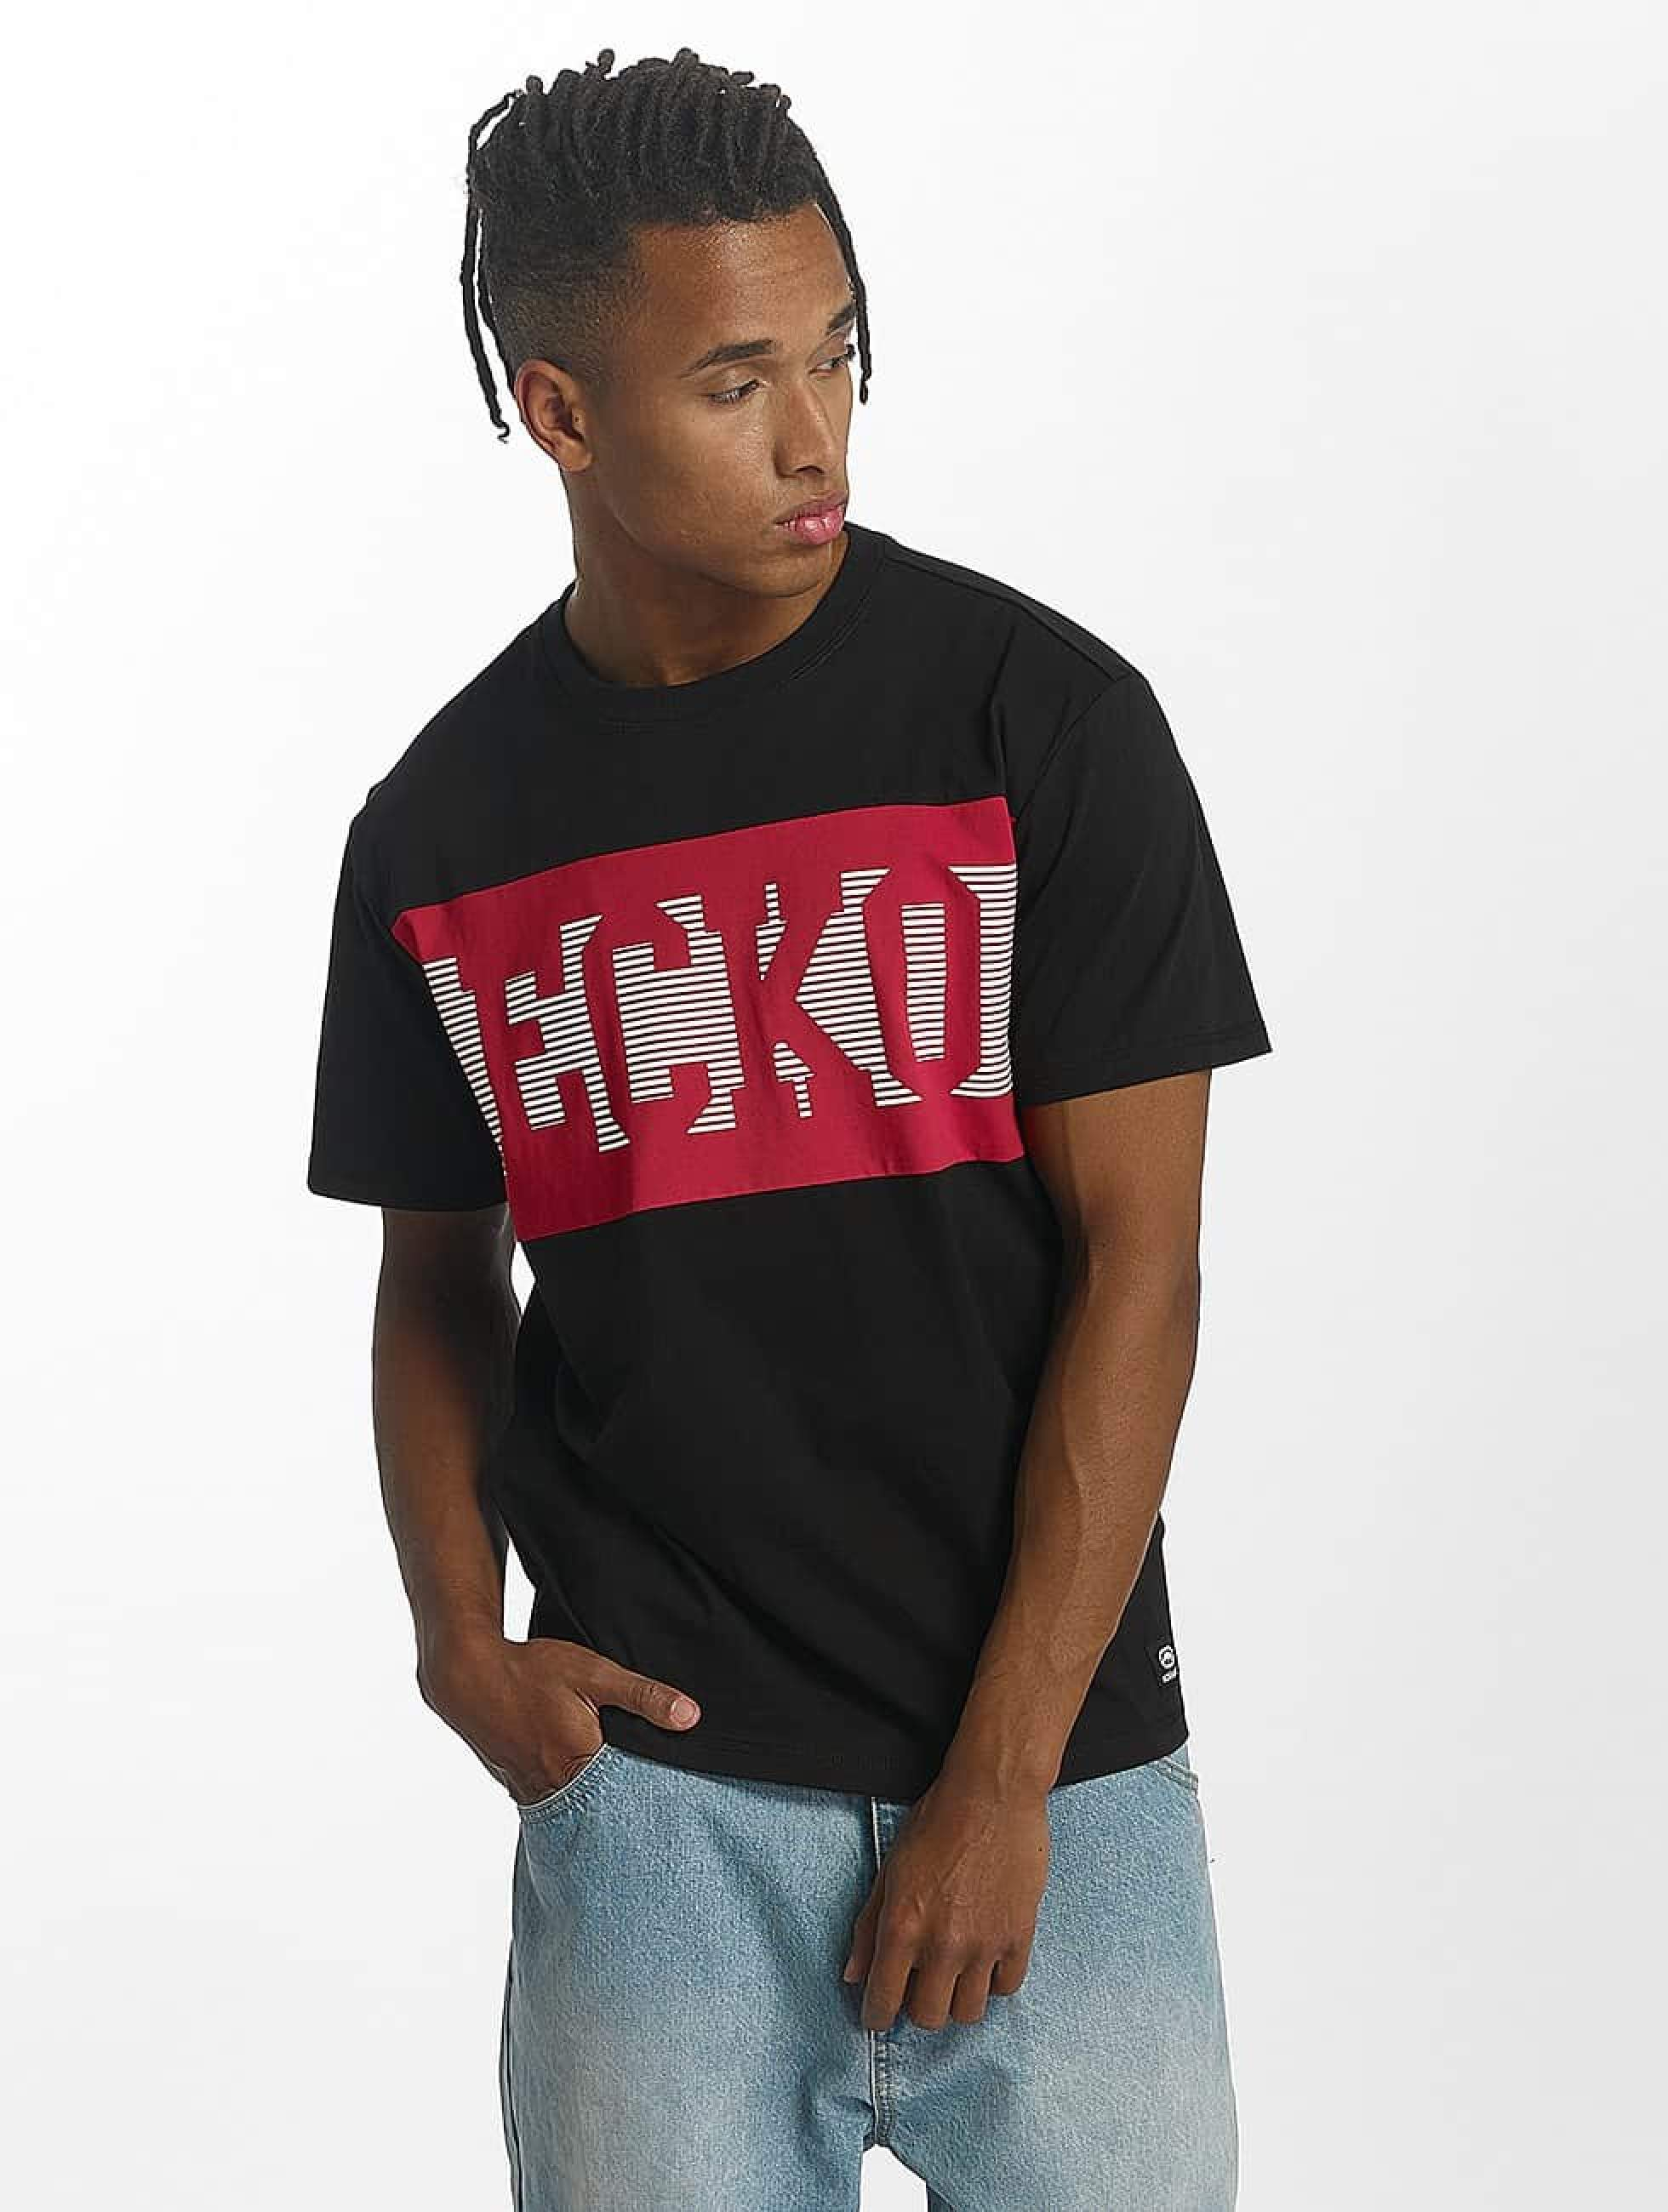 Ecko Unltd. / T-Shirt Square72 in black L